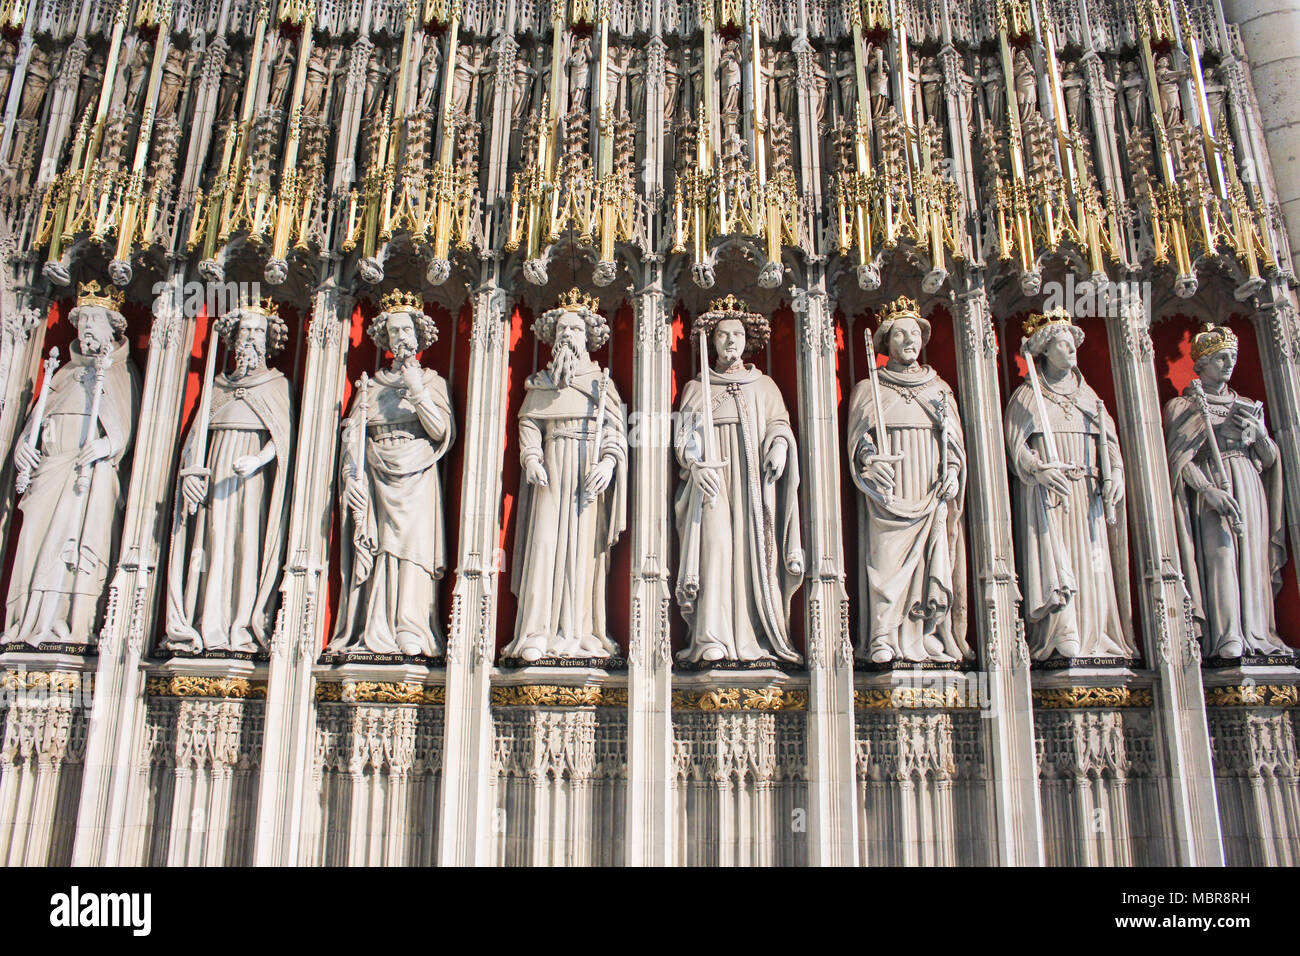 Kings Screen in York Minster (England) - Stock Image